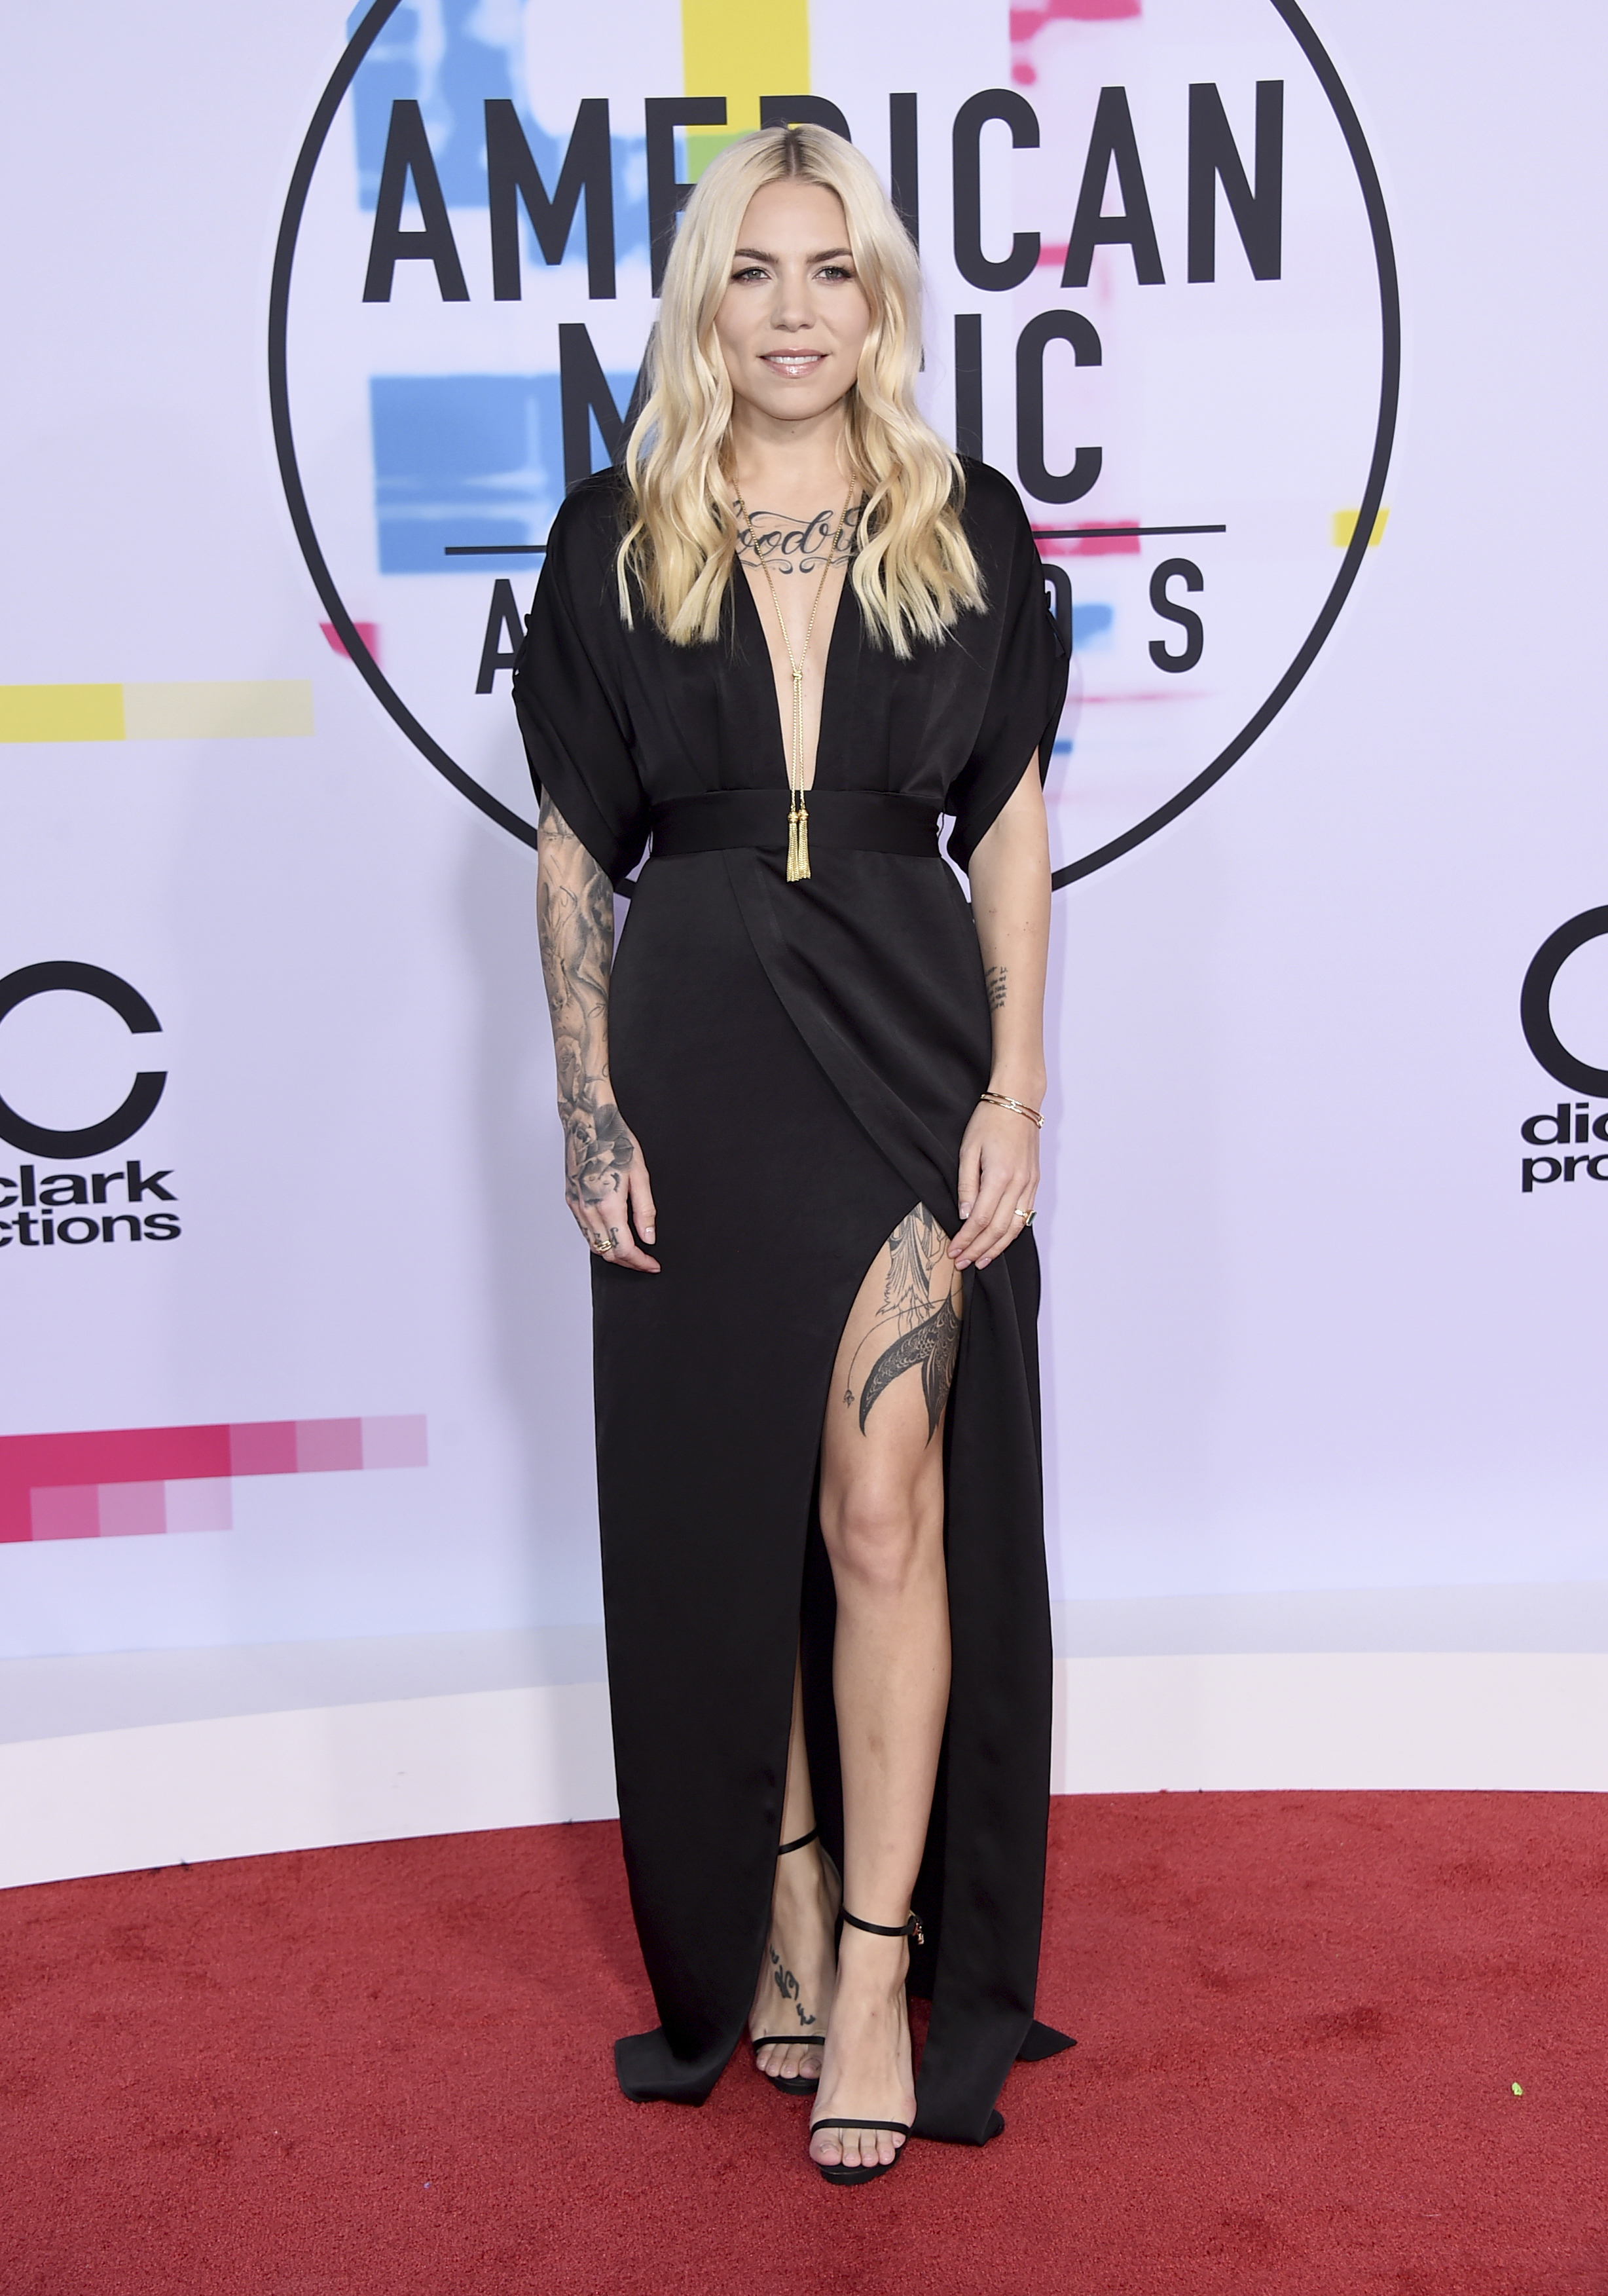 <div class='meta'><div class='origin-logo' data-origin='none'></div><span class='caption-text' data-credit='Jordan Strauss/Invision/AP'>Skylar Grey arrives at the American Music Awards at the Microsoft Theater on Sunday, Nov. 19, 2017, in Los Angeles.</span></div>